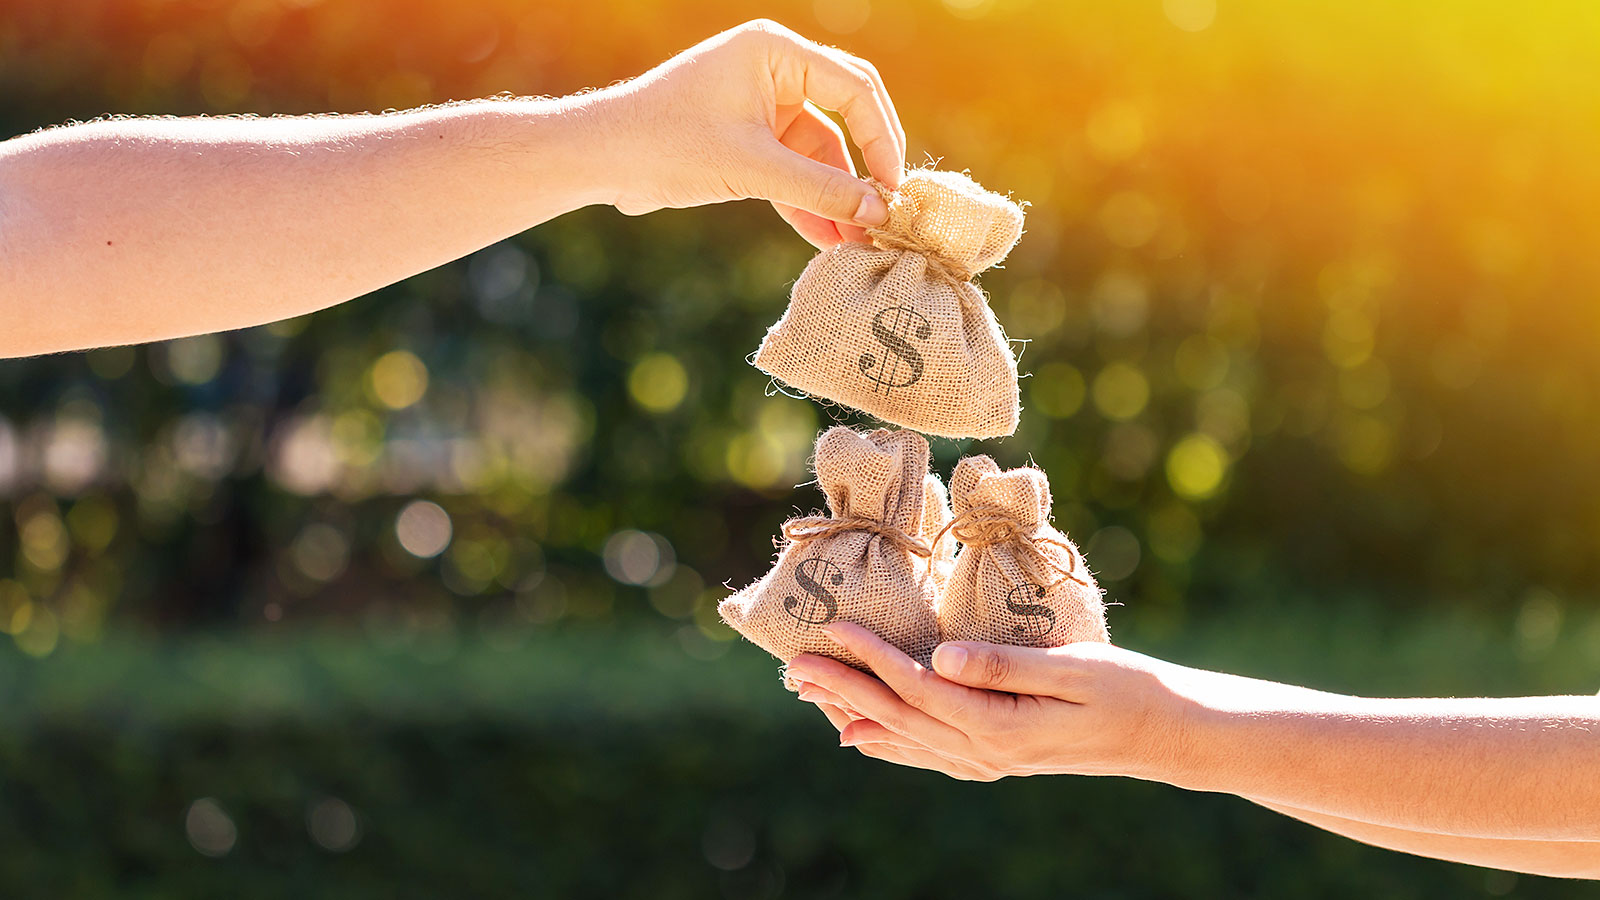 Millennials don't tend to do this often, but when they do they're more generous than others